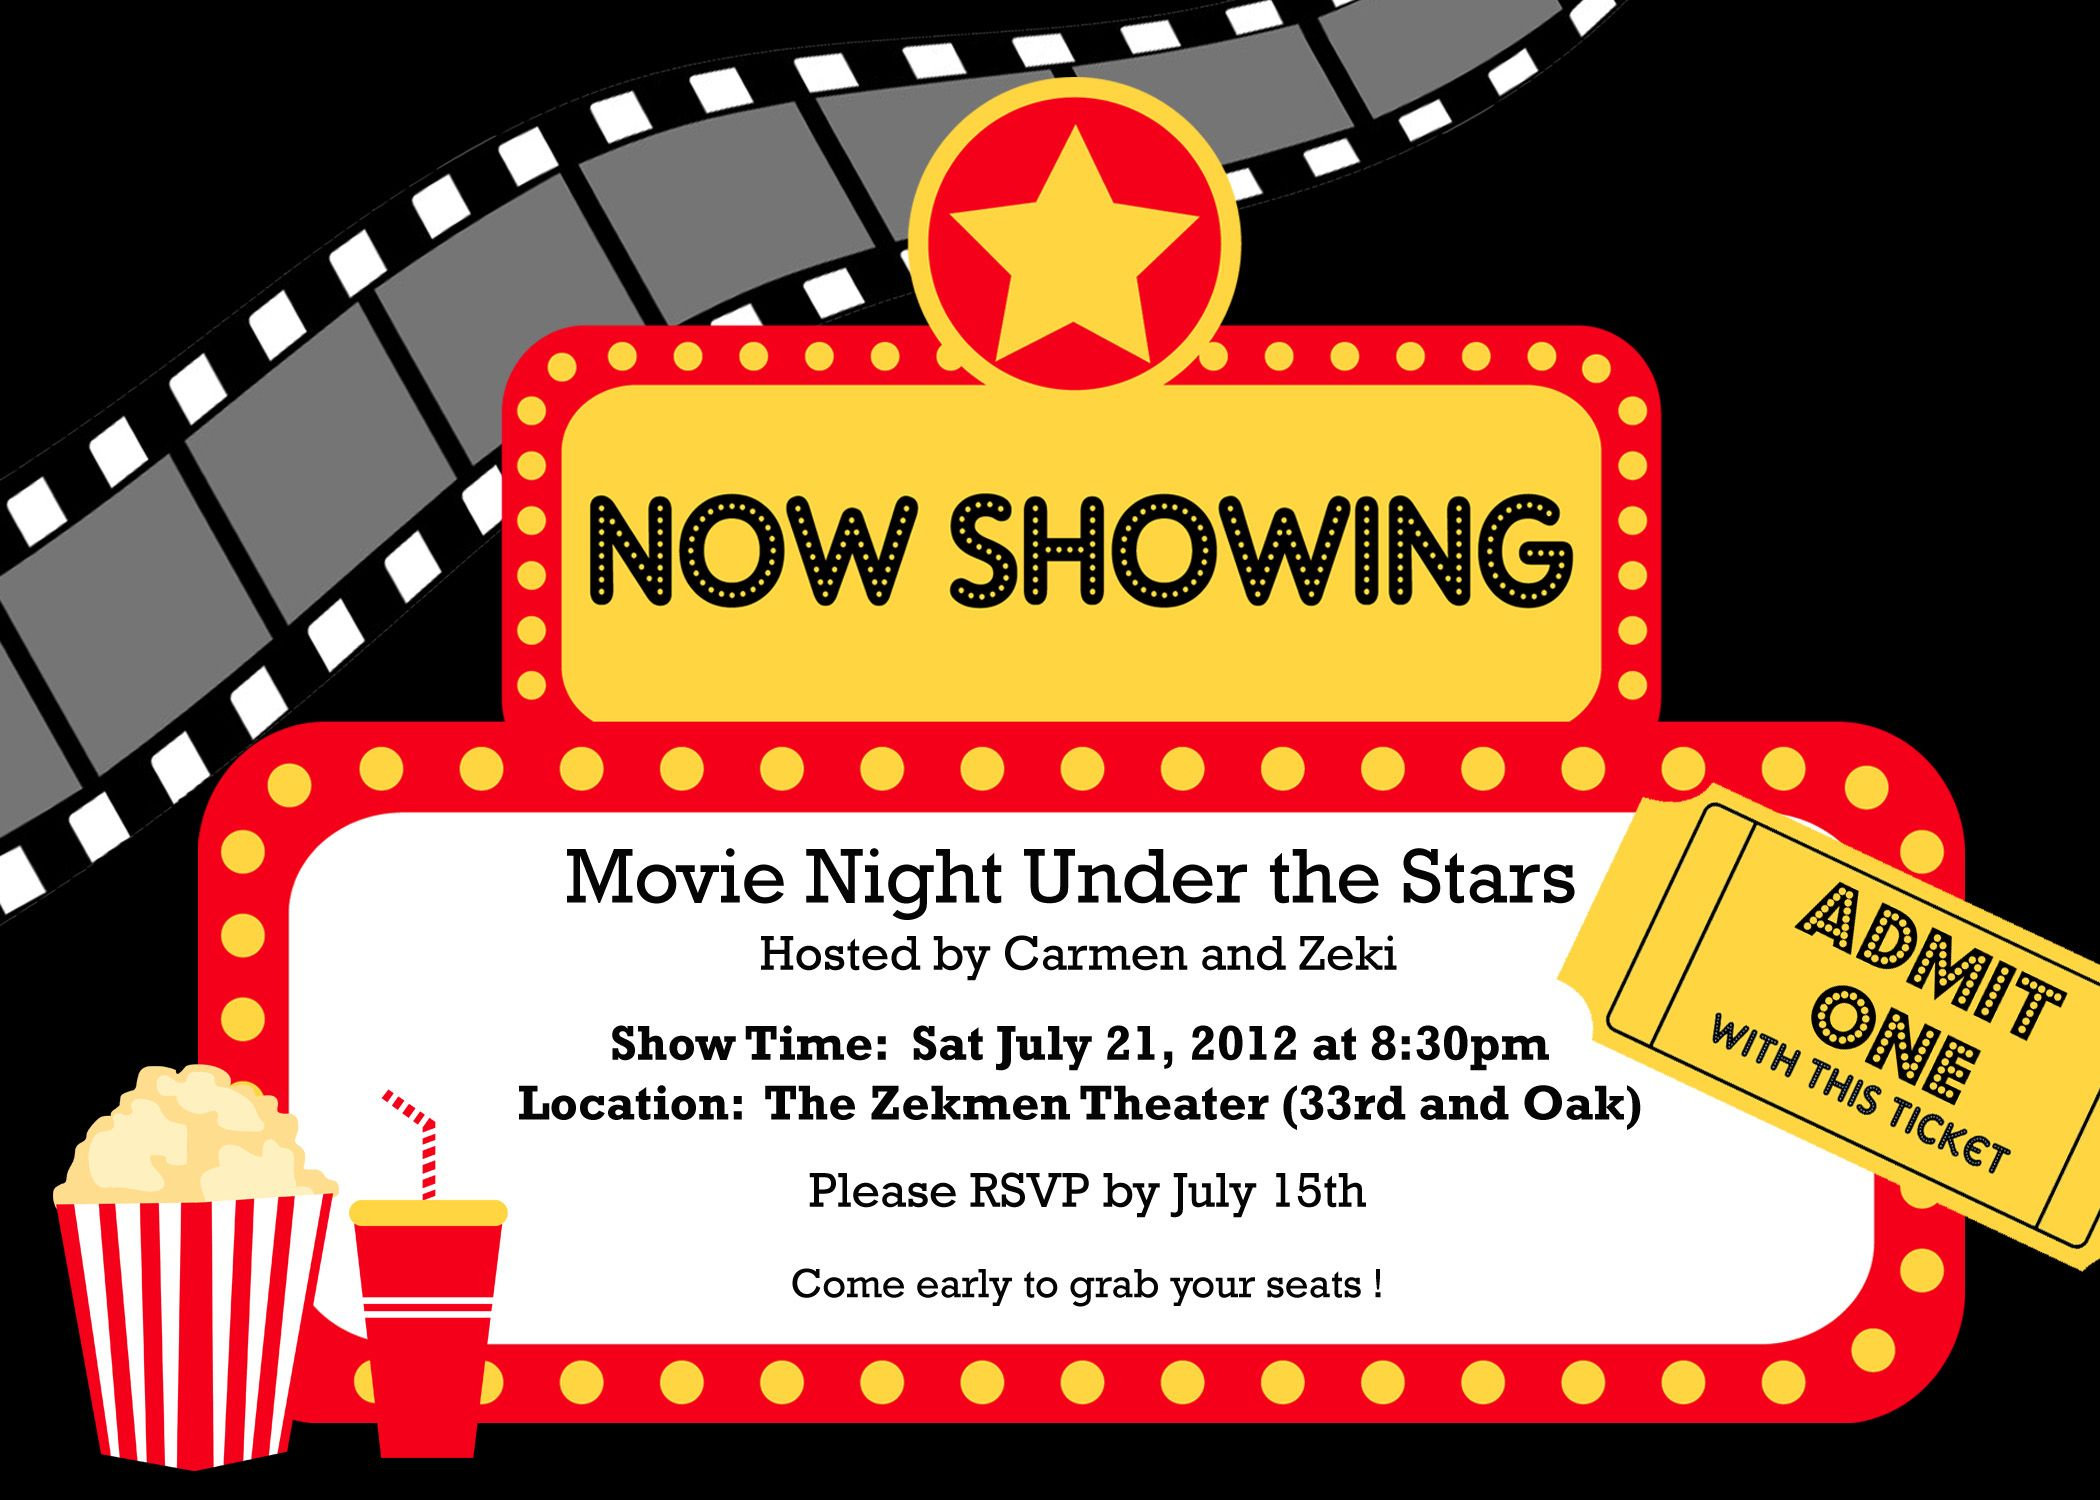 movie party invitations | Party Invites | Pinterest | Movie party ...